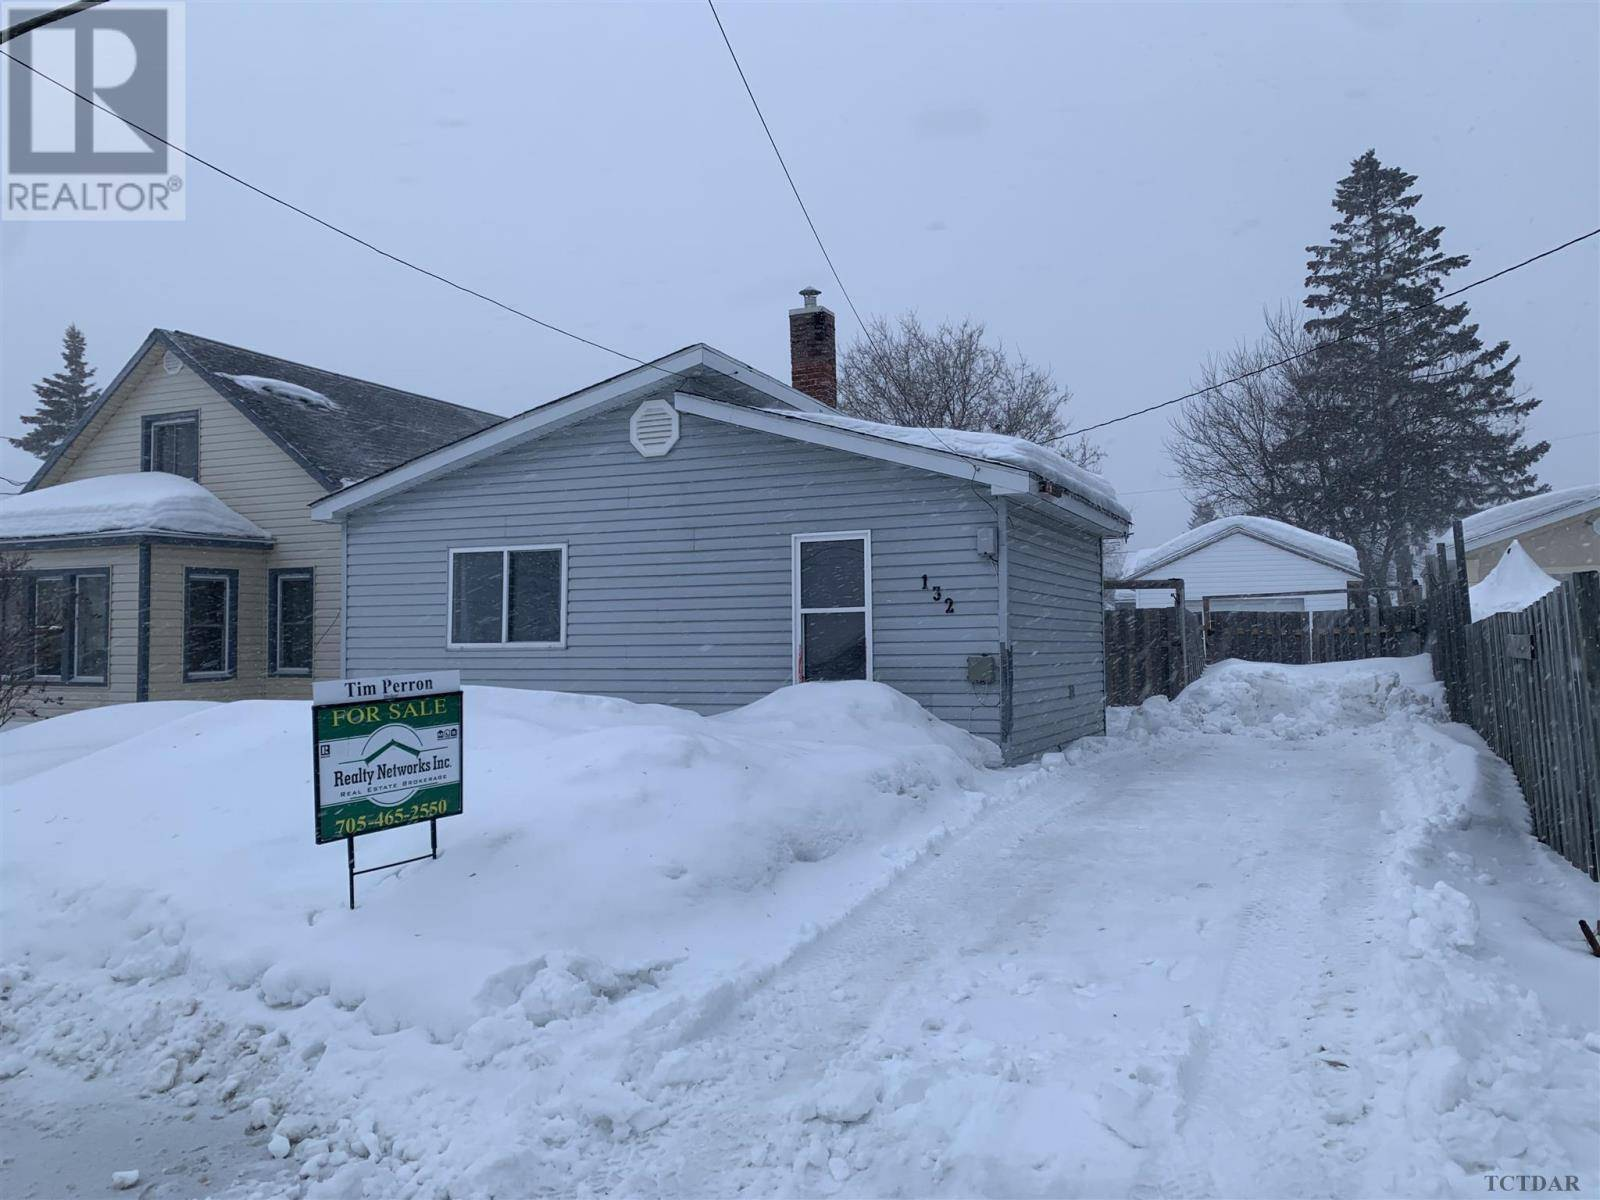 House for sale at 132 Huot St Timmins Ontario - MLS: TM200520